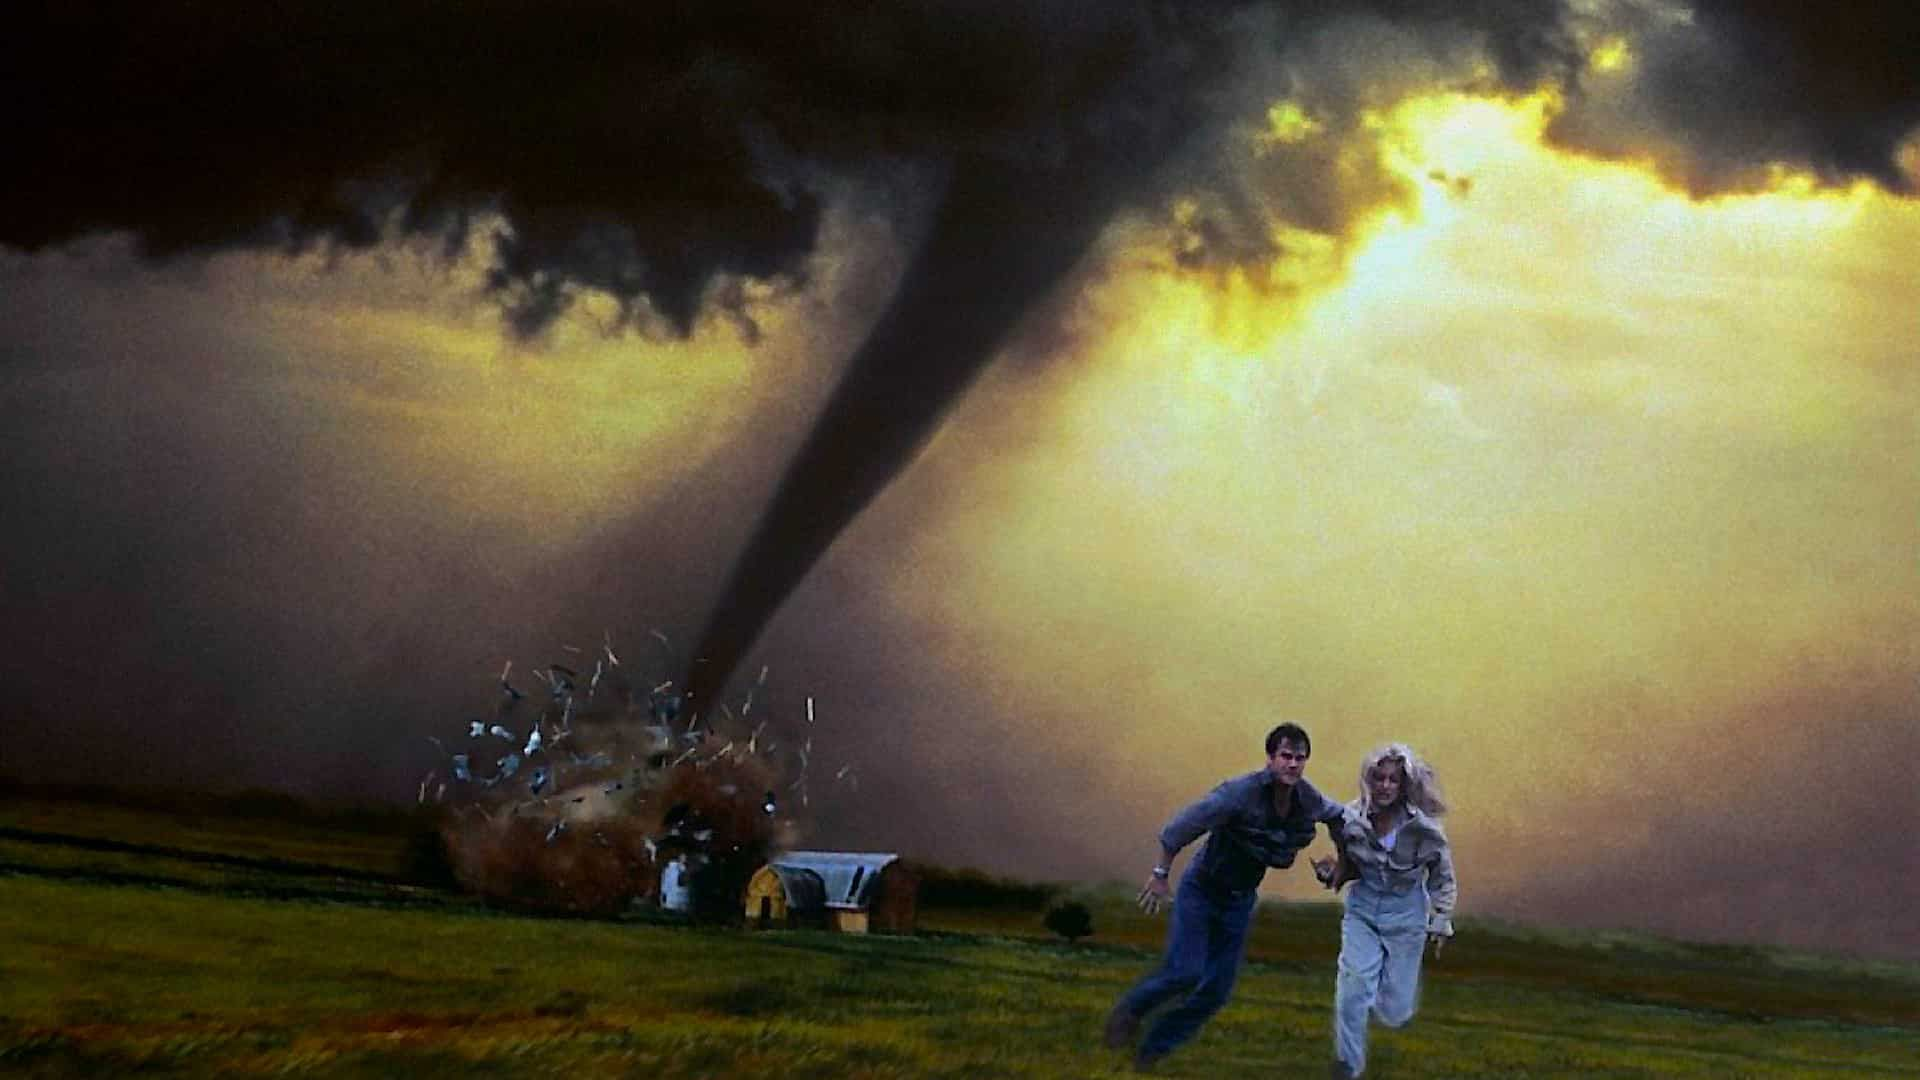 COULD TWISTER REMAKE BRING PEACE TO THE MIDDLE EAST?